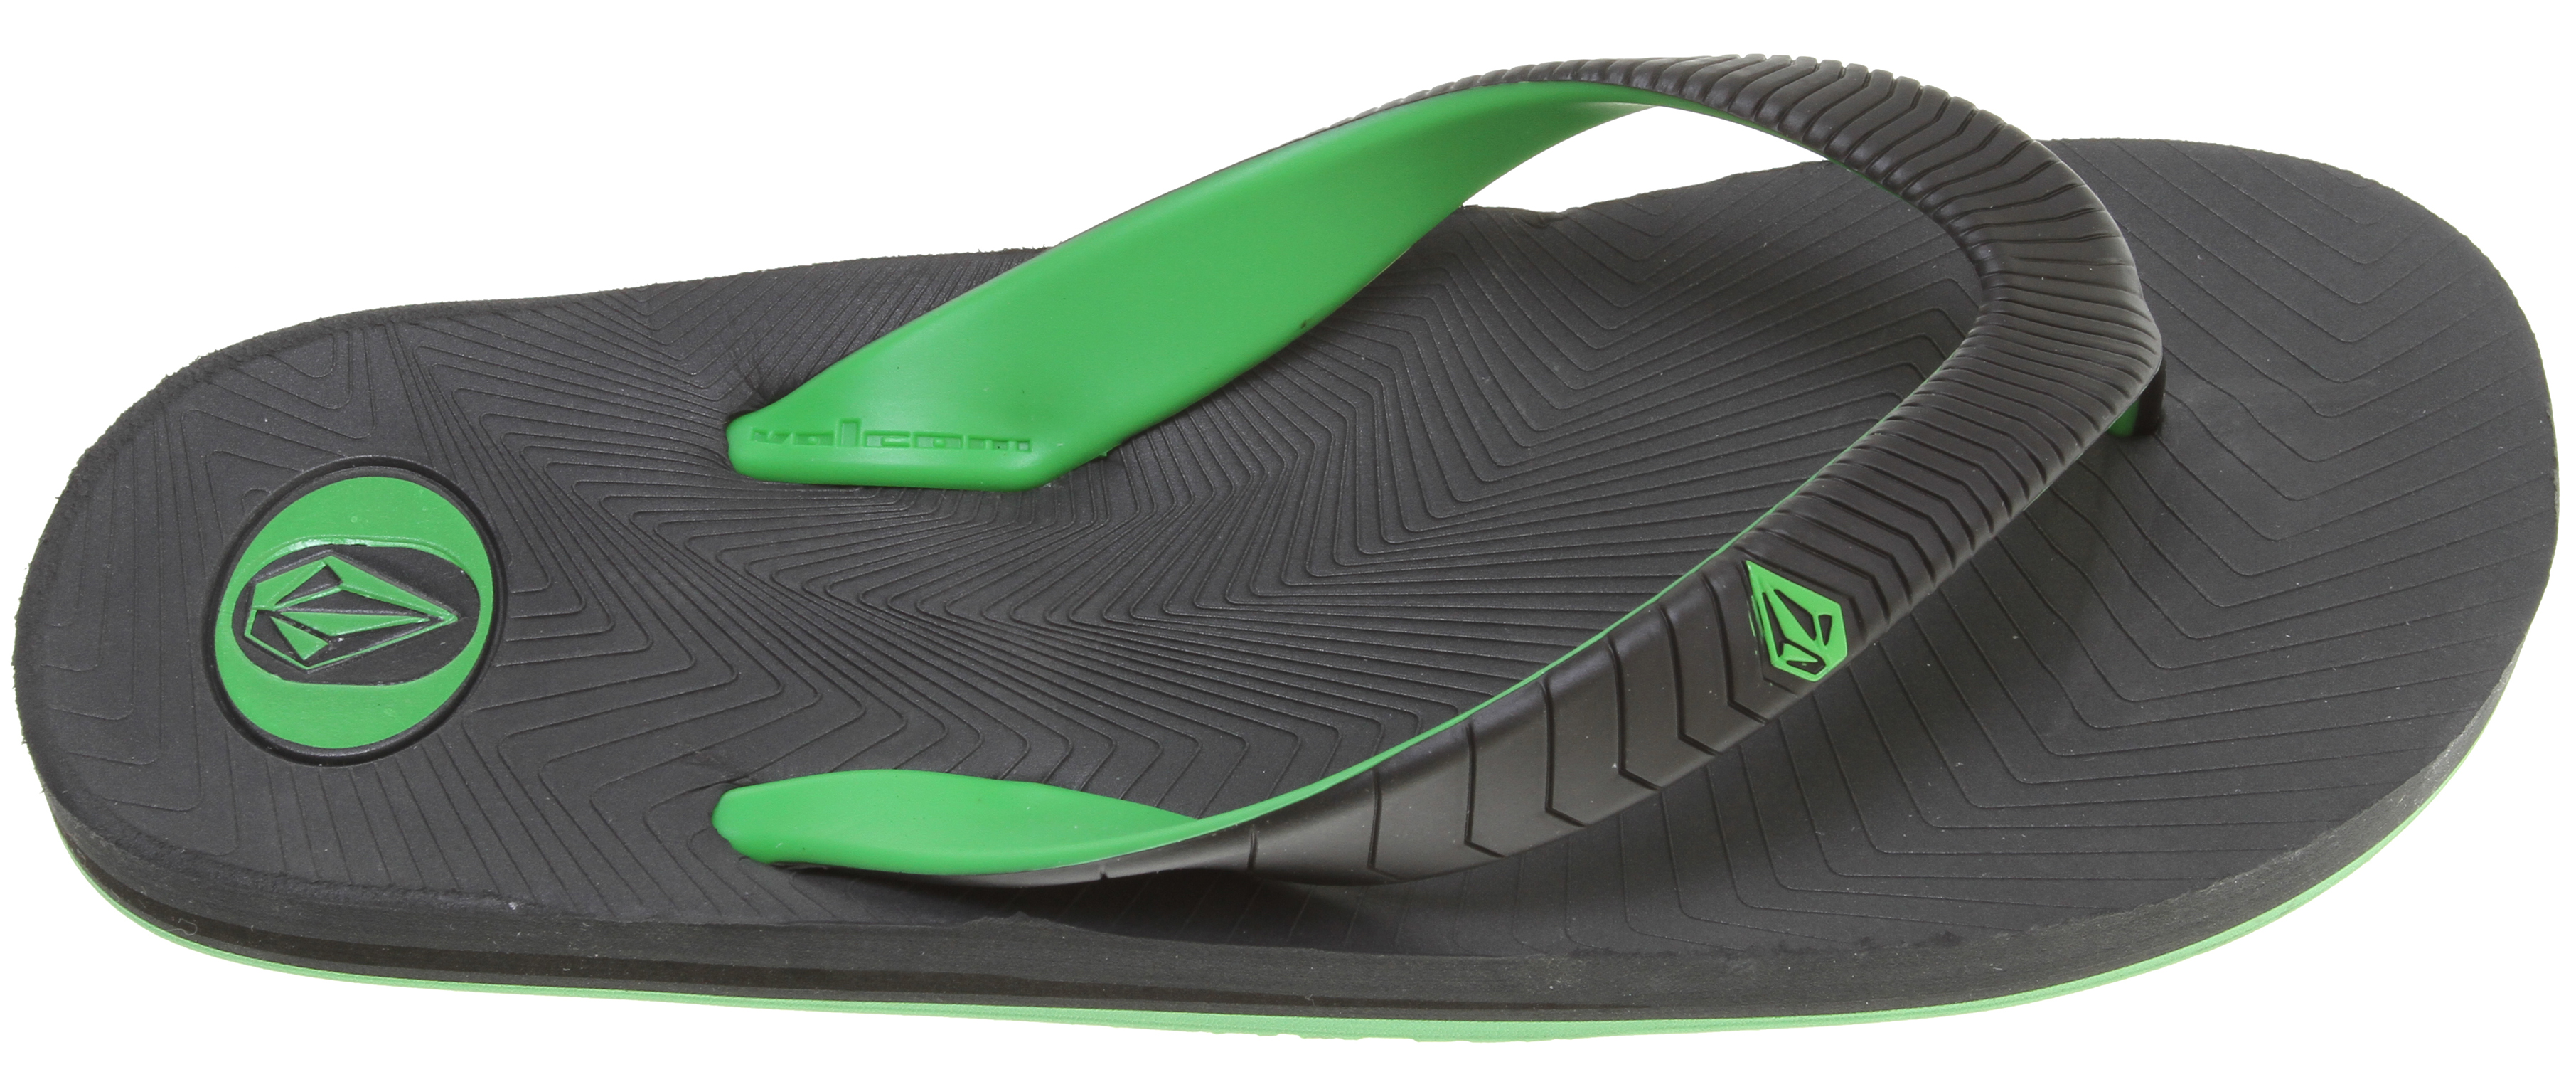 Surf Key Features of the Volcom Concourse Creedlers Sandals: 2 color molded TPU toe strap Molded soft density EVA foot bed Bunch O Stones molded rubber outsole - $14.95